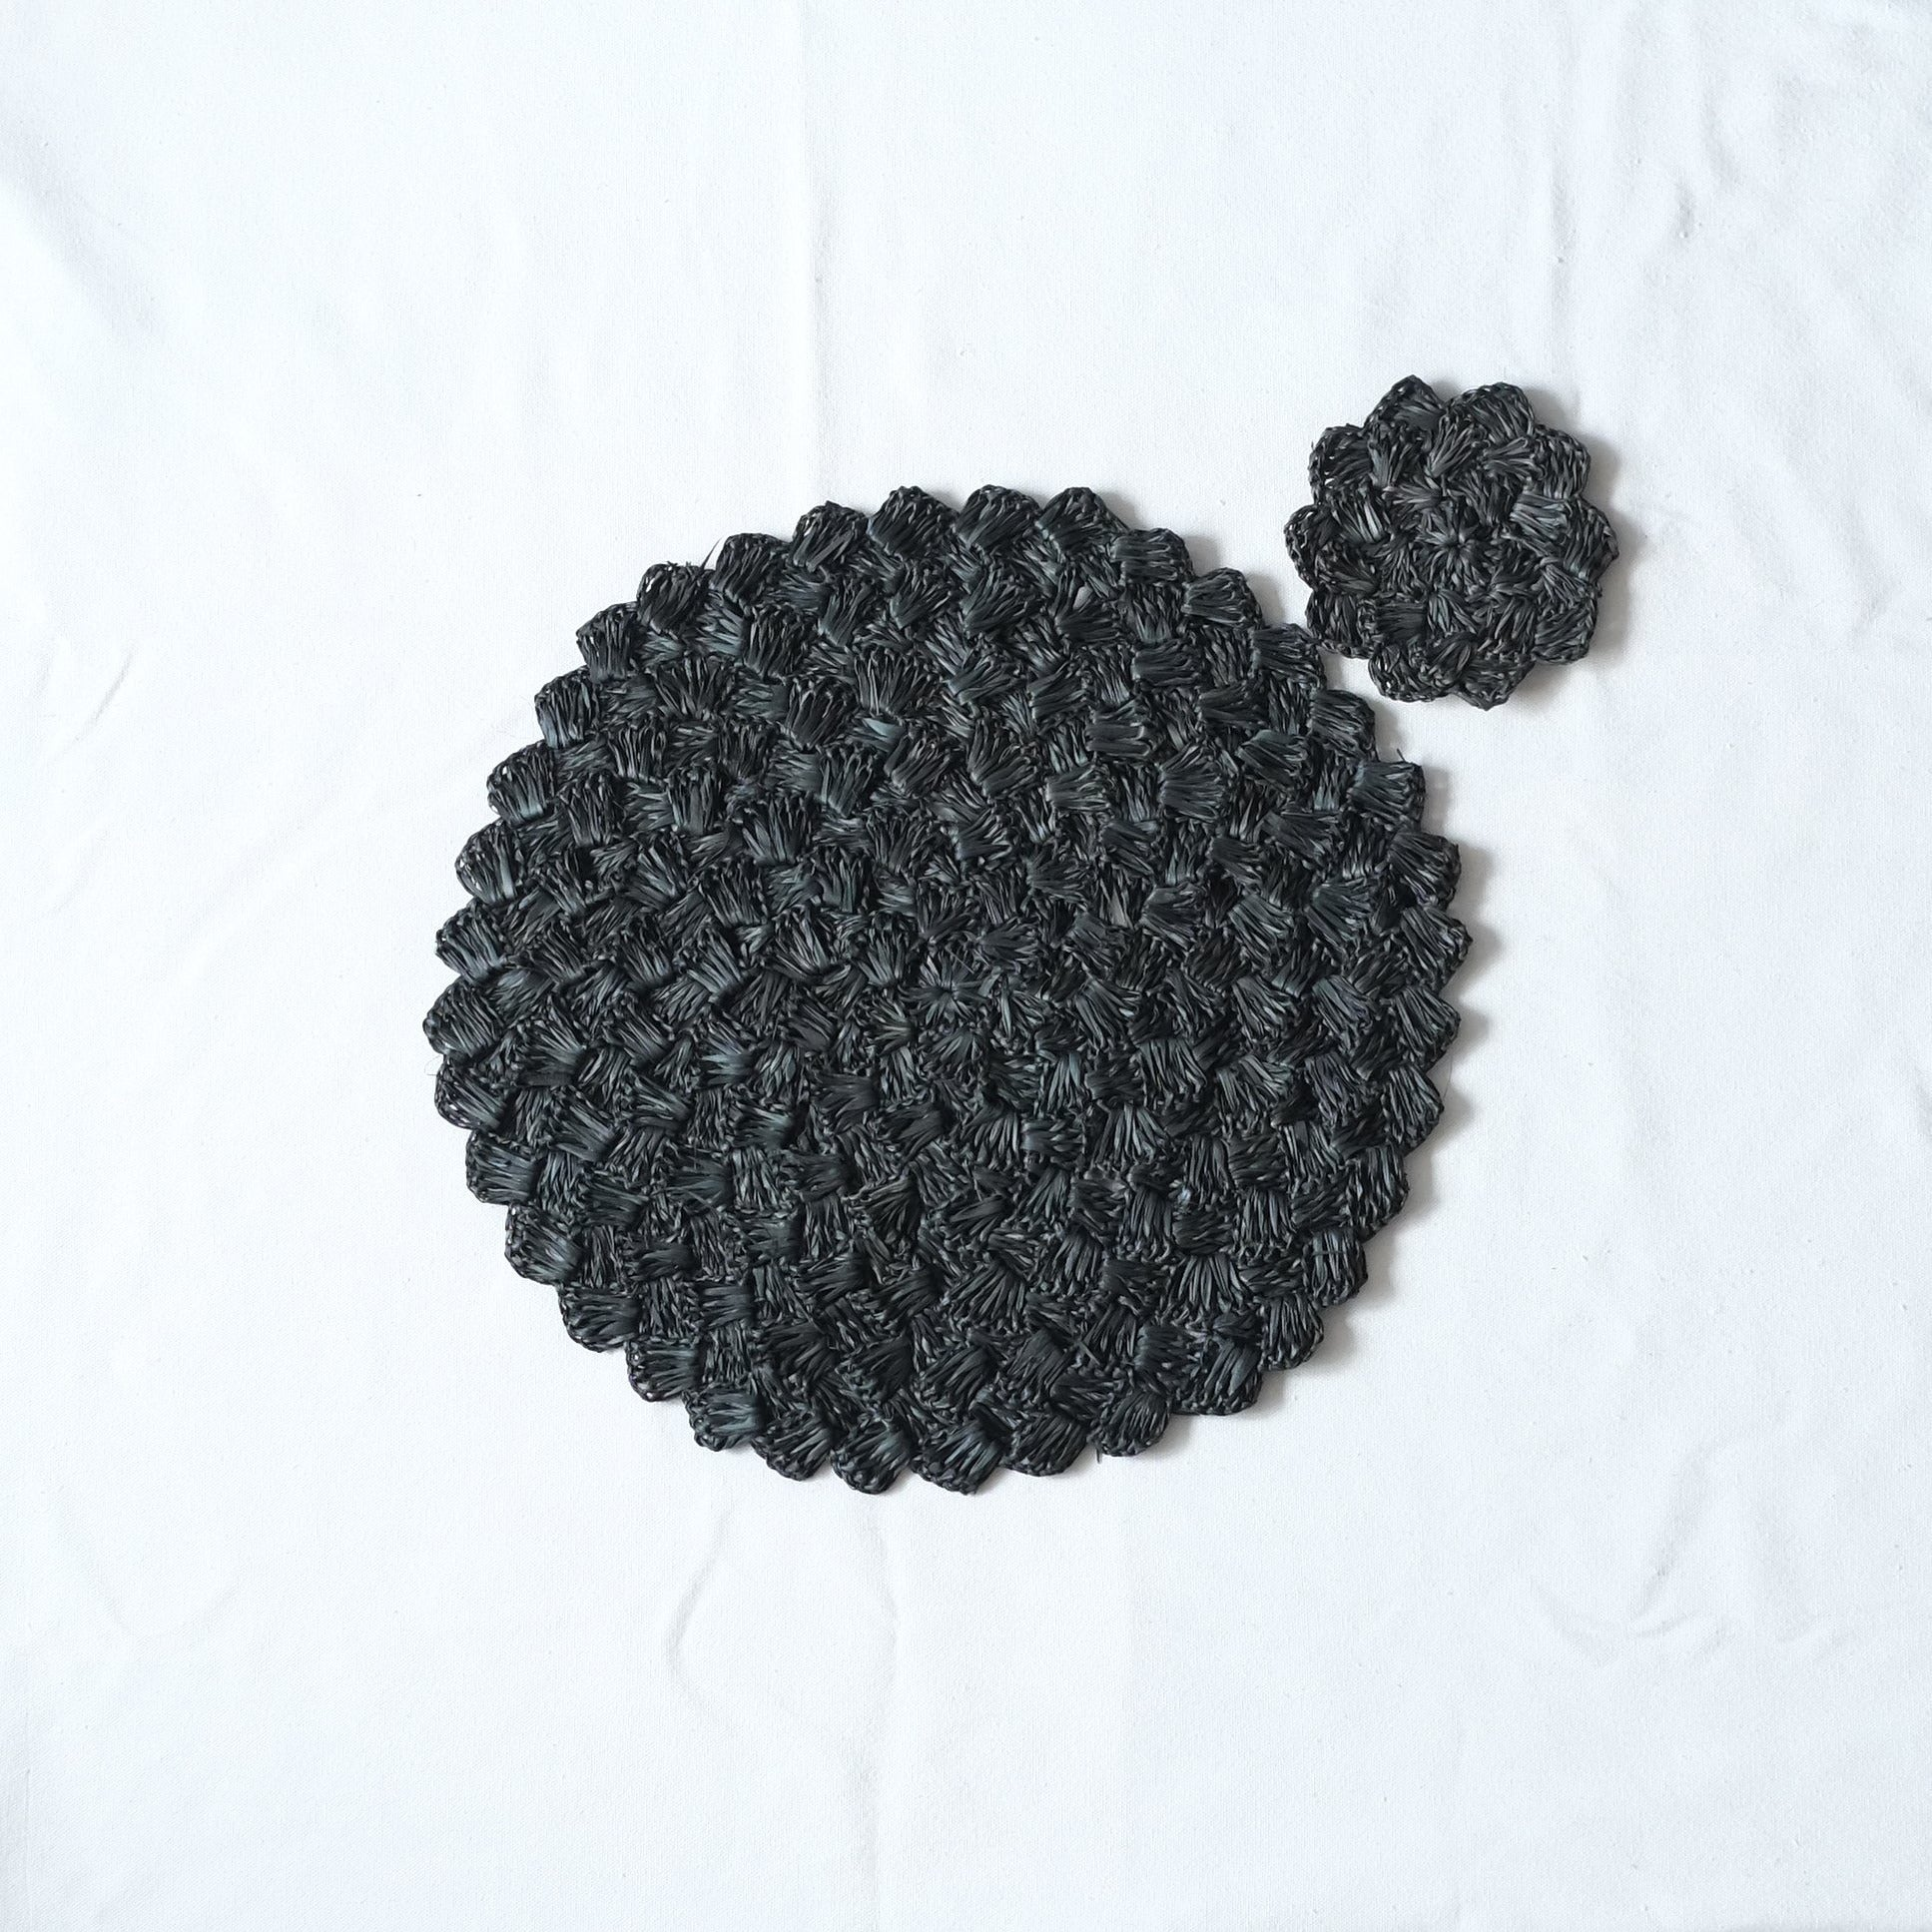 Raffia Scalloped Placemat and Coaster Set - Black